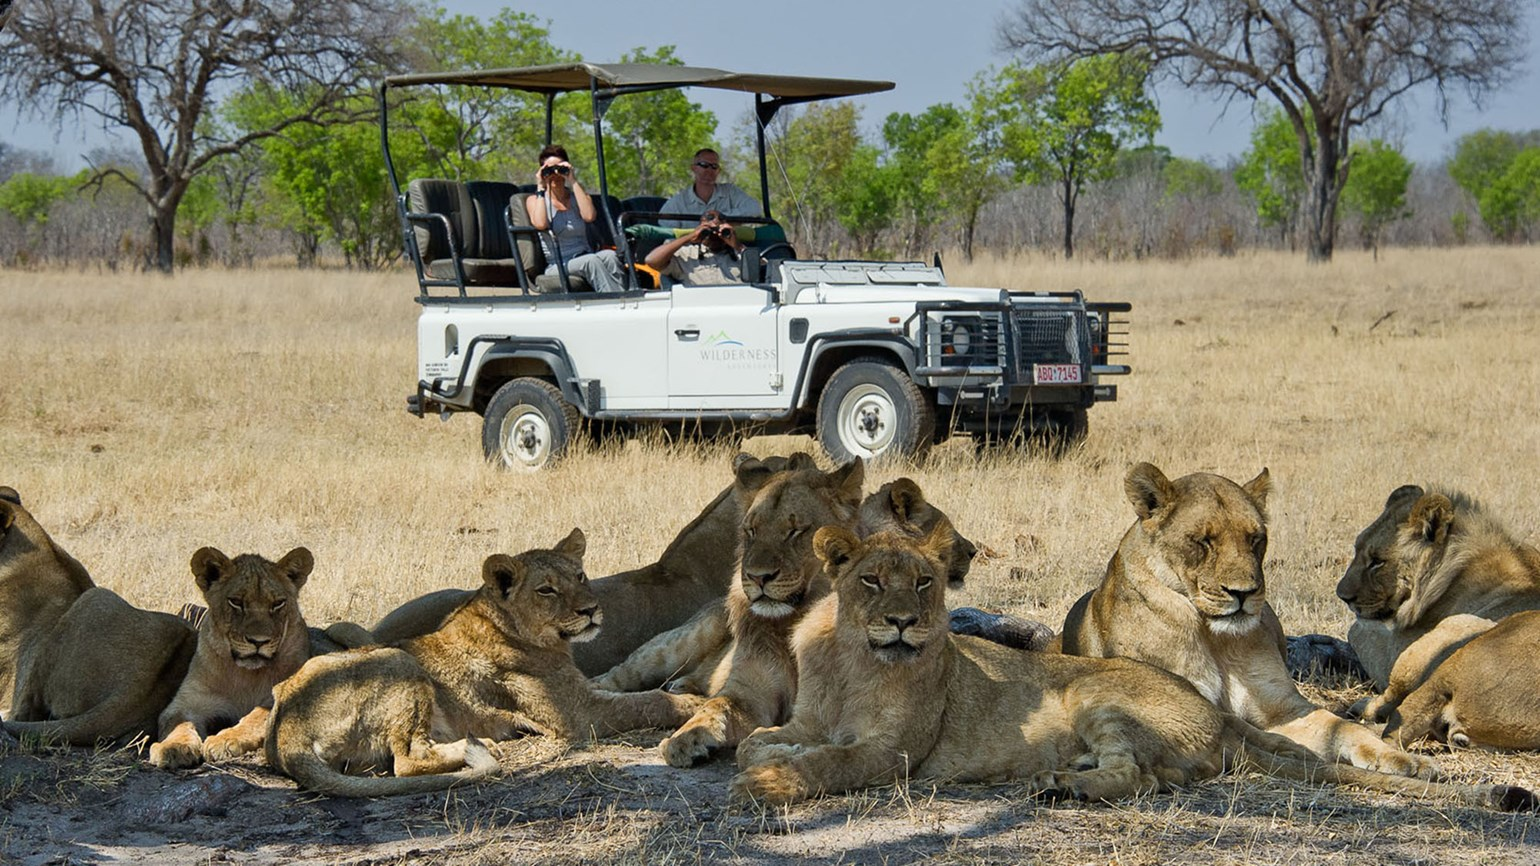 Extraordinary Journeys launches hands-on safari experiences in Southern Africa